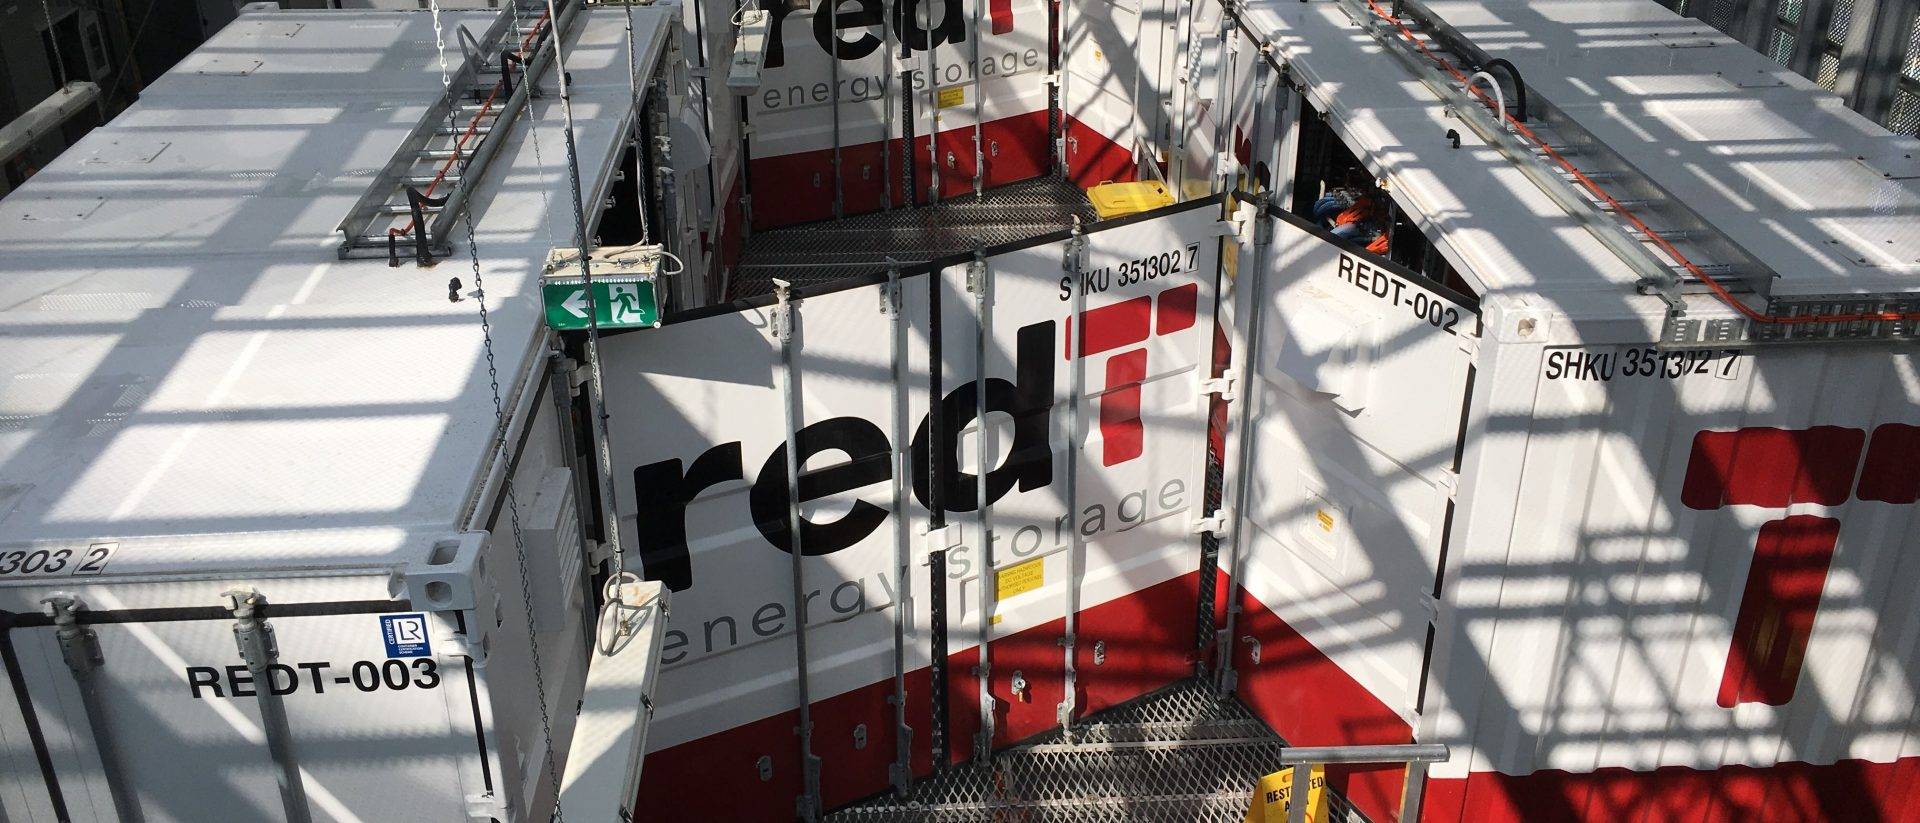 ENERGY STORAGE -redT_Melbourne_Machines_Overhead